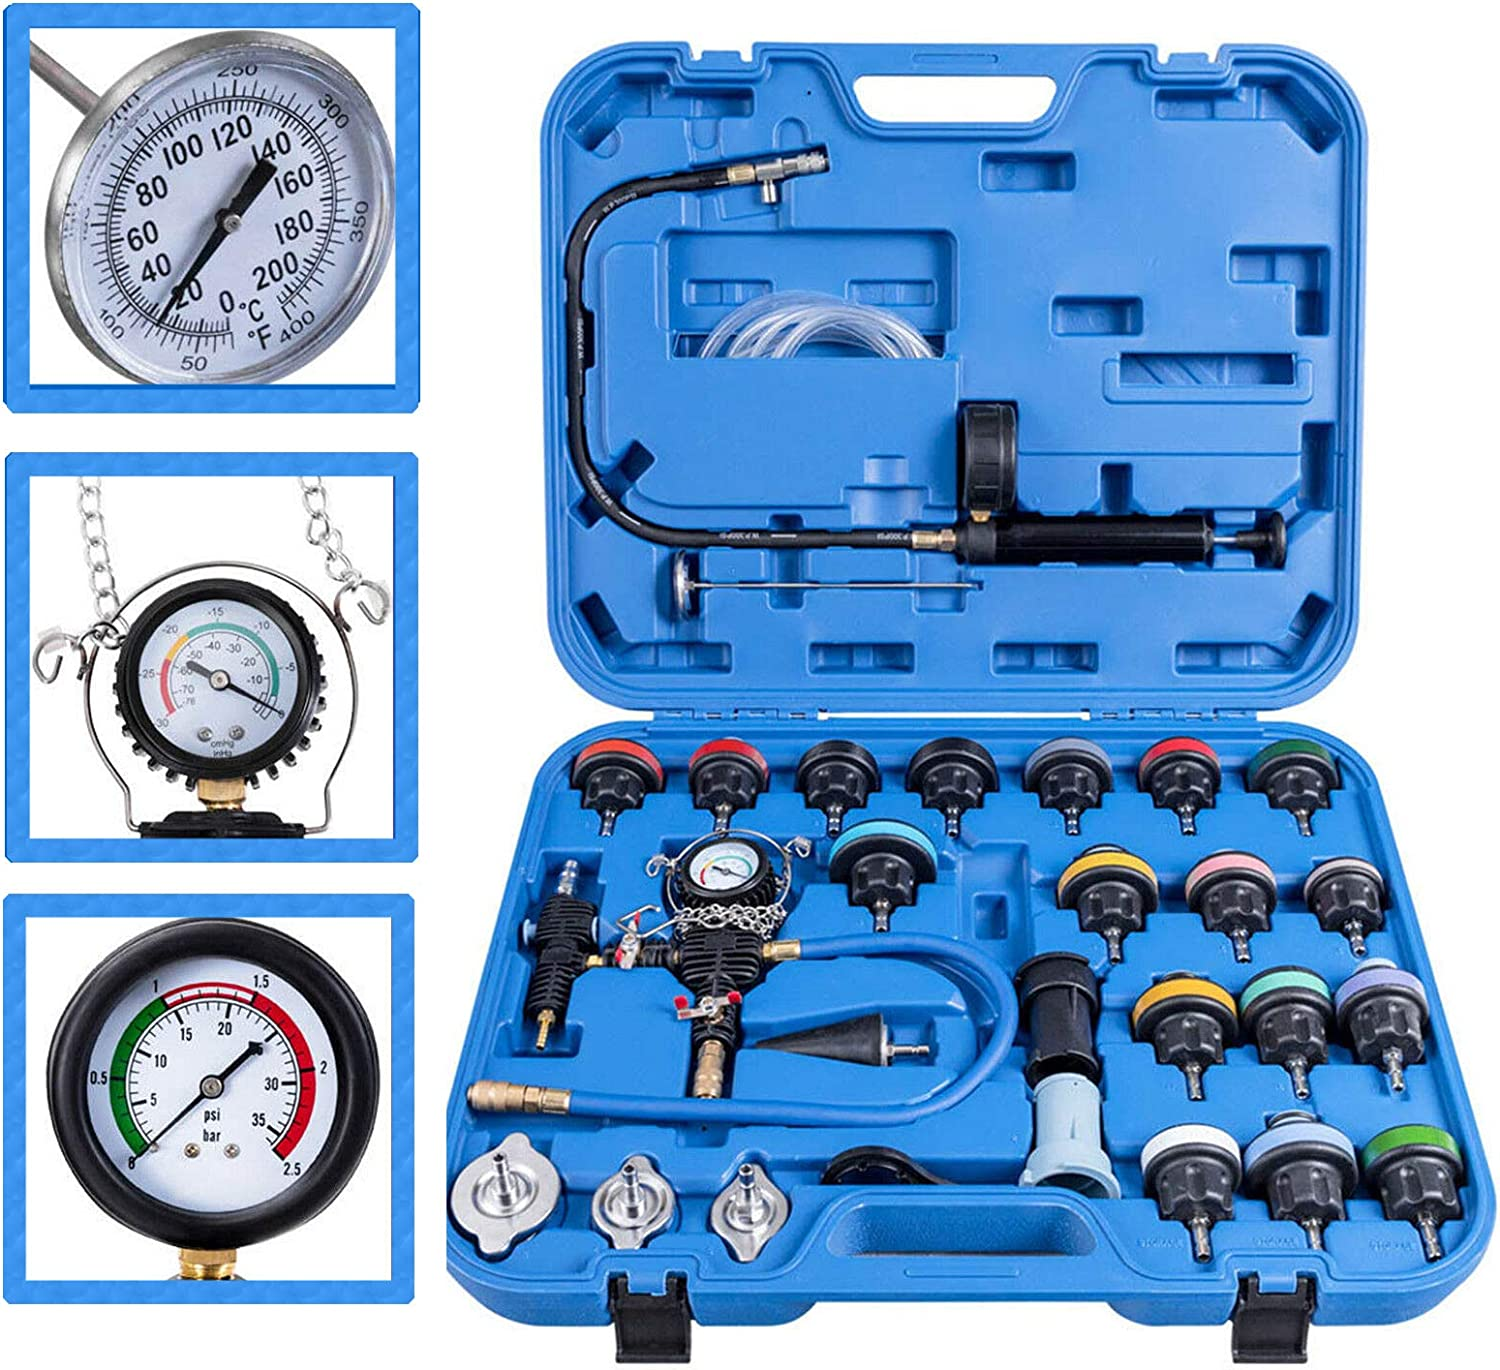 NuaDua Car Radiator Pressure Tester and Vacuum Type Cooling System Purge Refill Kit 28pcs with Case